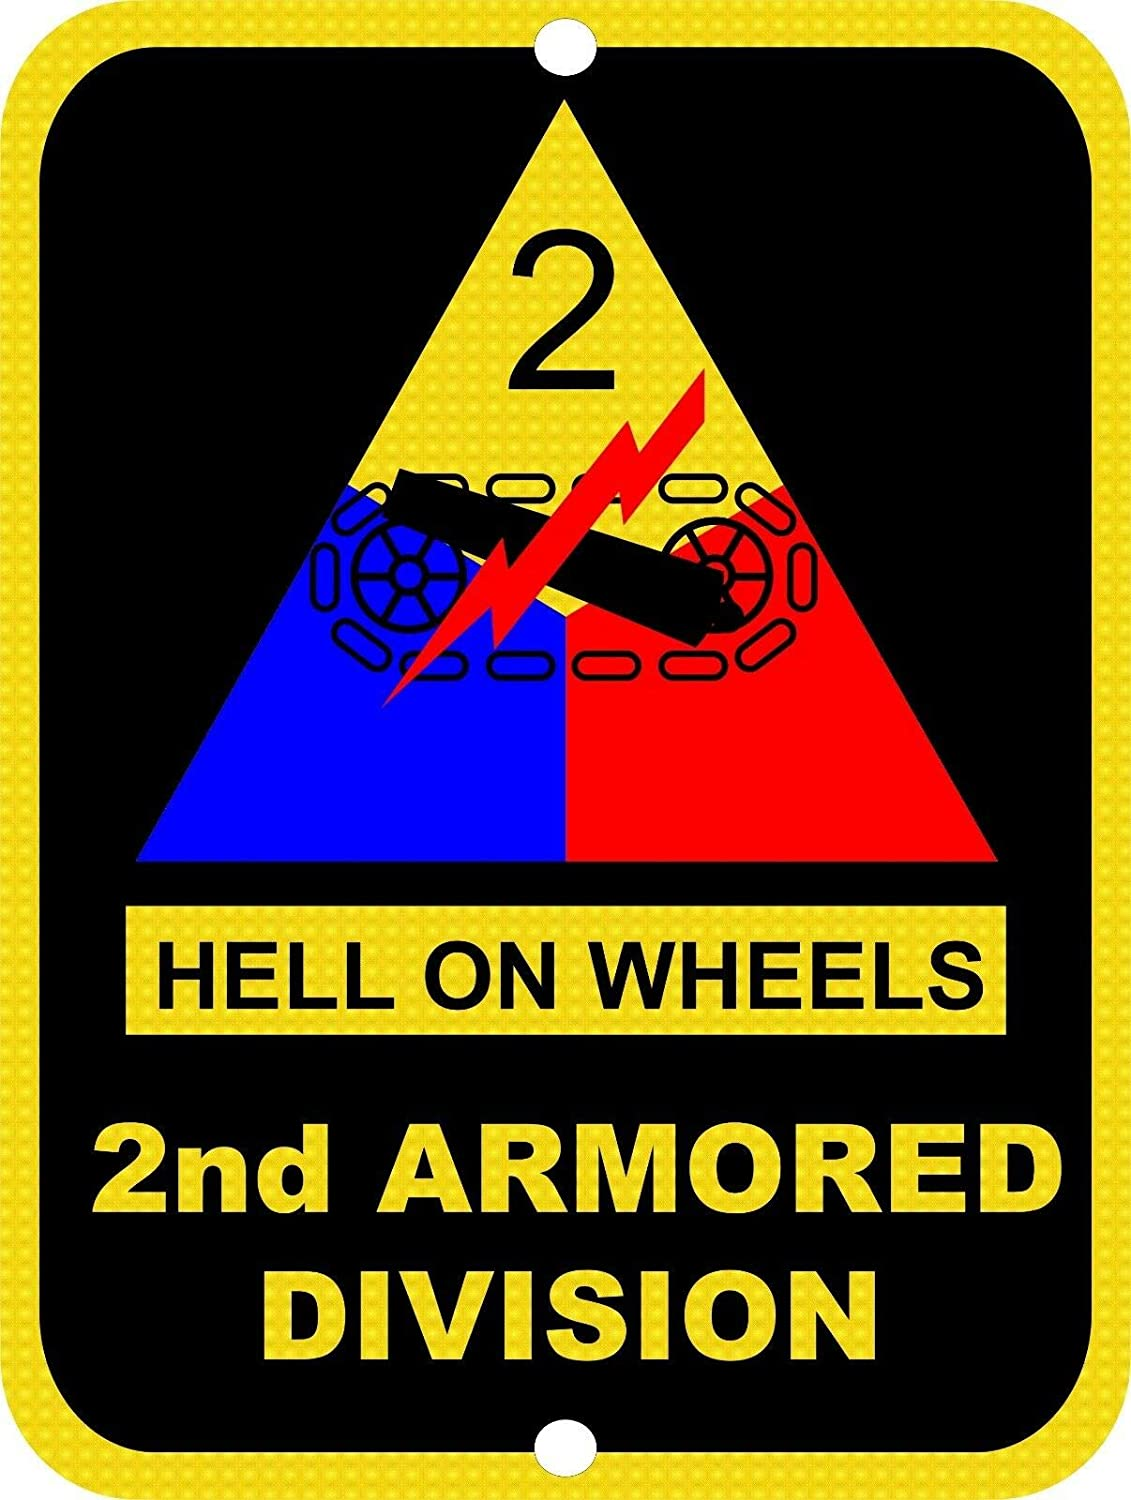 Army 2Nd Armored Division Hell On Wheels USA Military Metal Tin Sign Vintage Aluminum Metal Signs Plaque Wall Art Poster For Garage Man Cave Beer Cafe Bar Pub Club Patio Home Decor 8